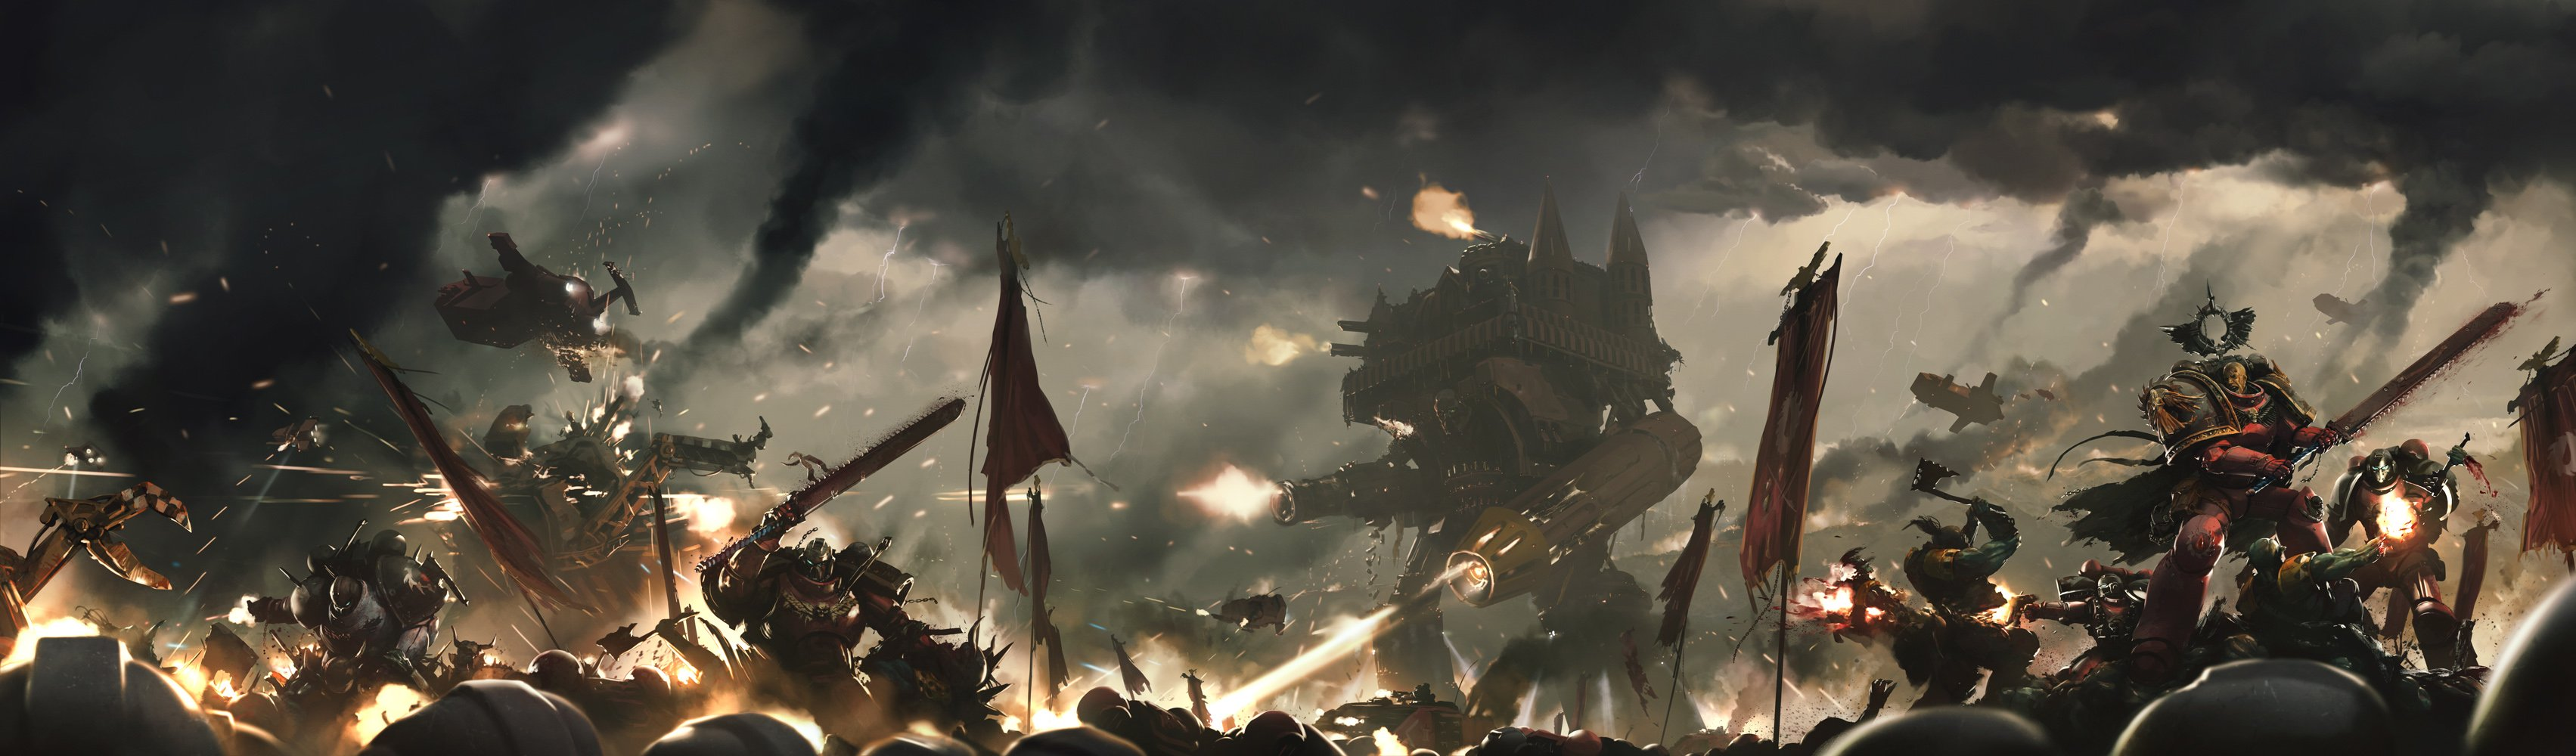 Black Library: Blood in the Machine #wh40k. - Изображение 1